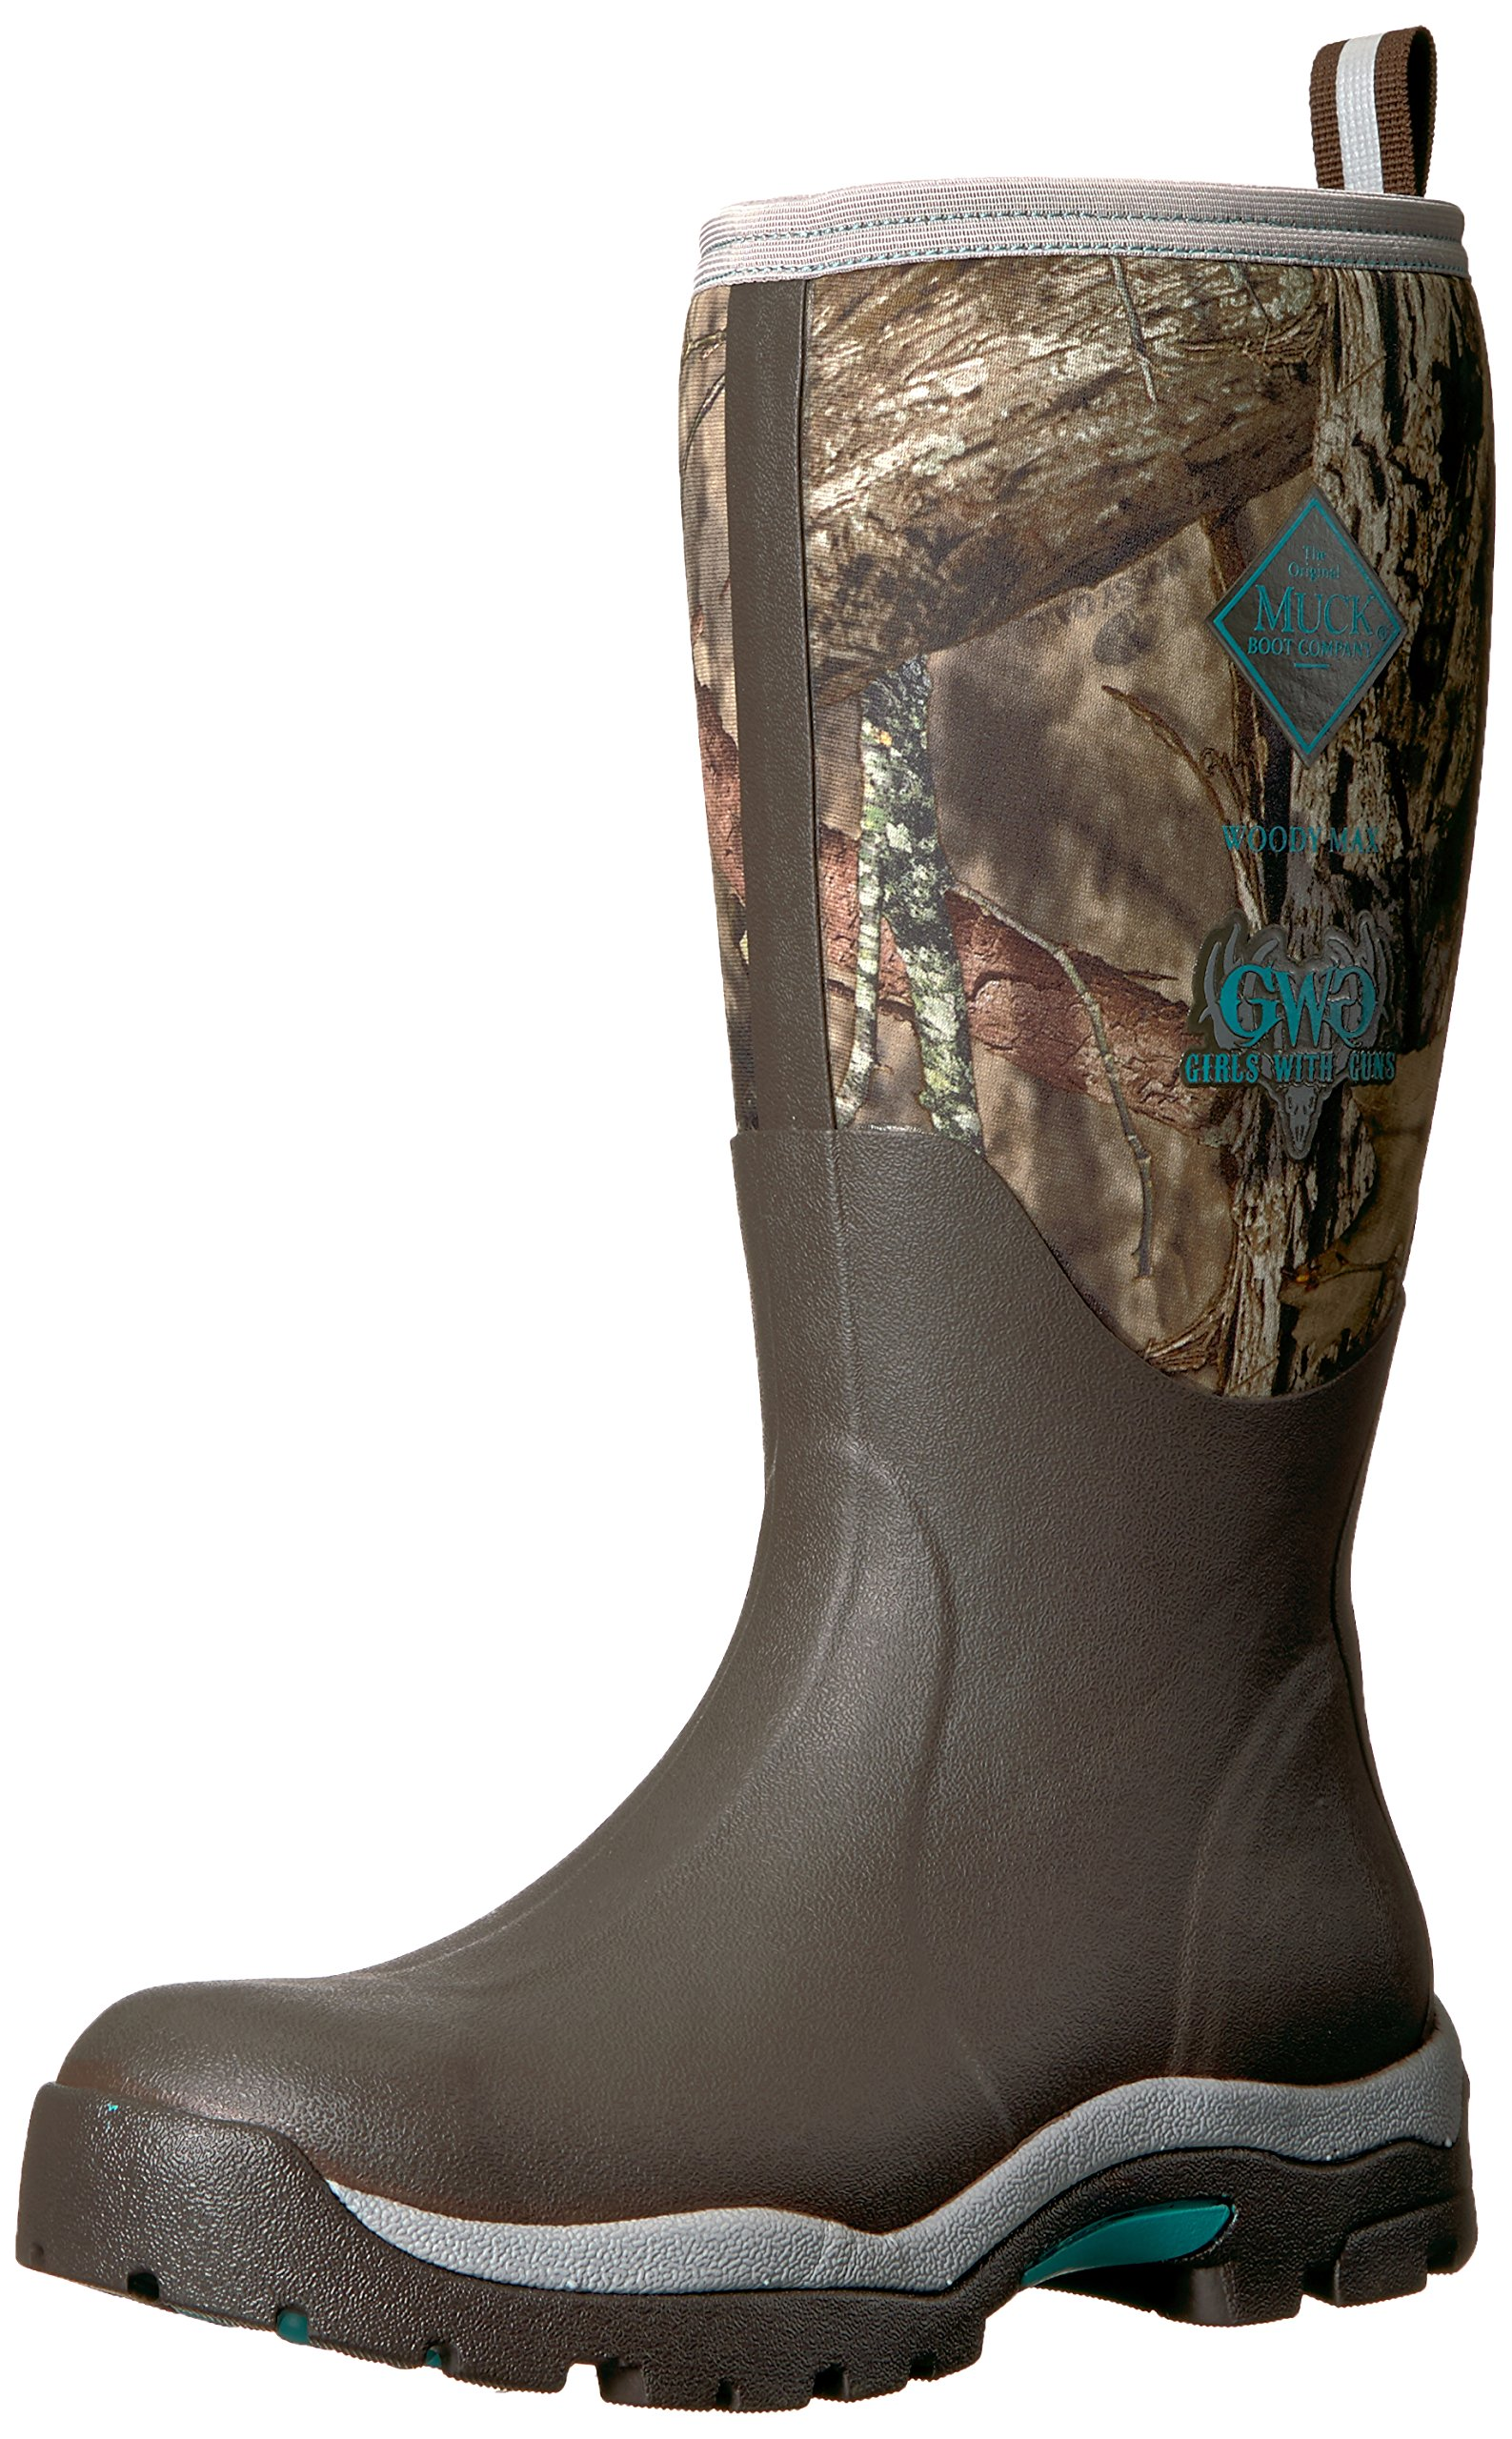 Muck Boot Women's Woody PK Work Boot, Bark, Mossy Oak Break-up/Teal, 11 M US